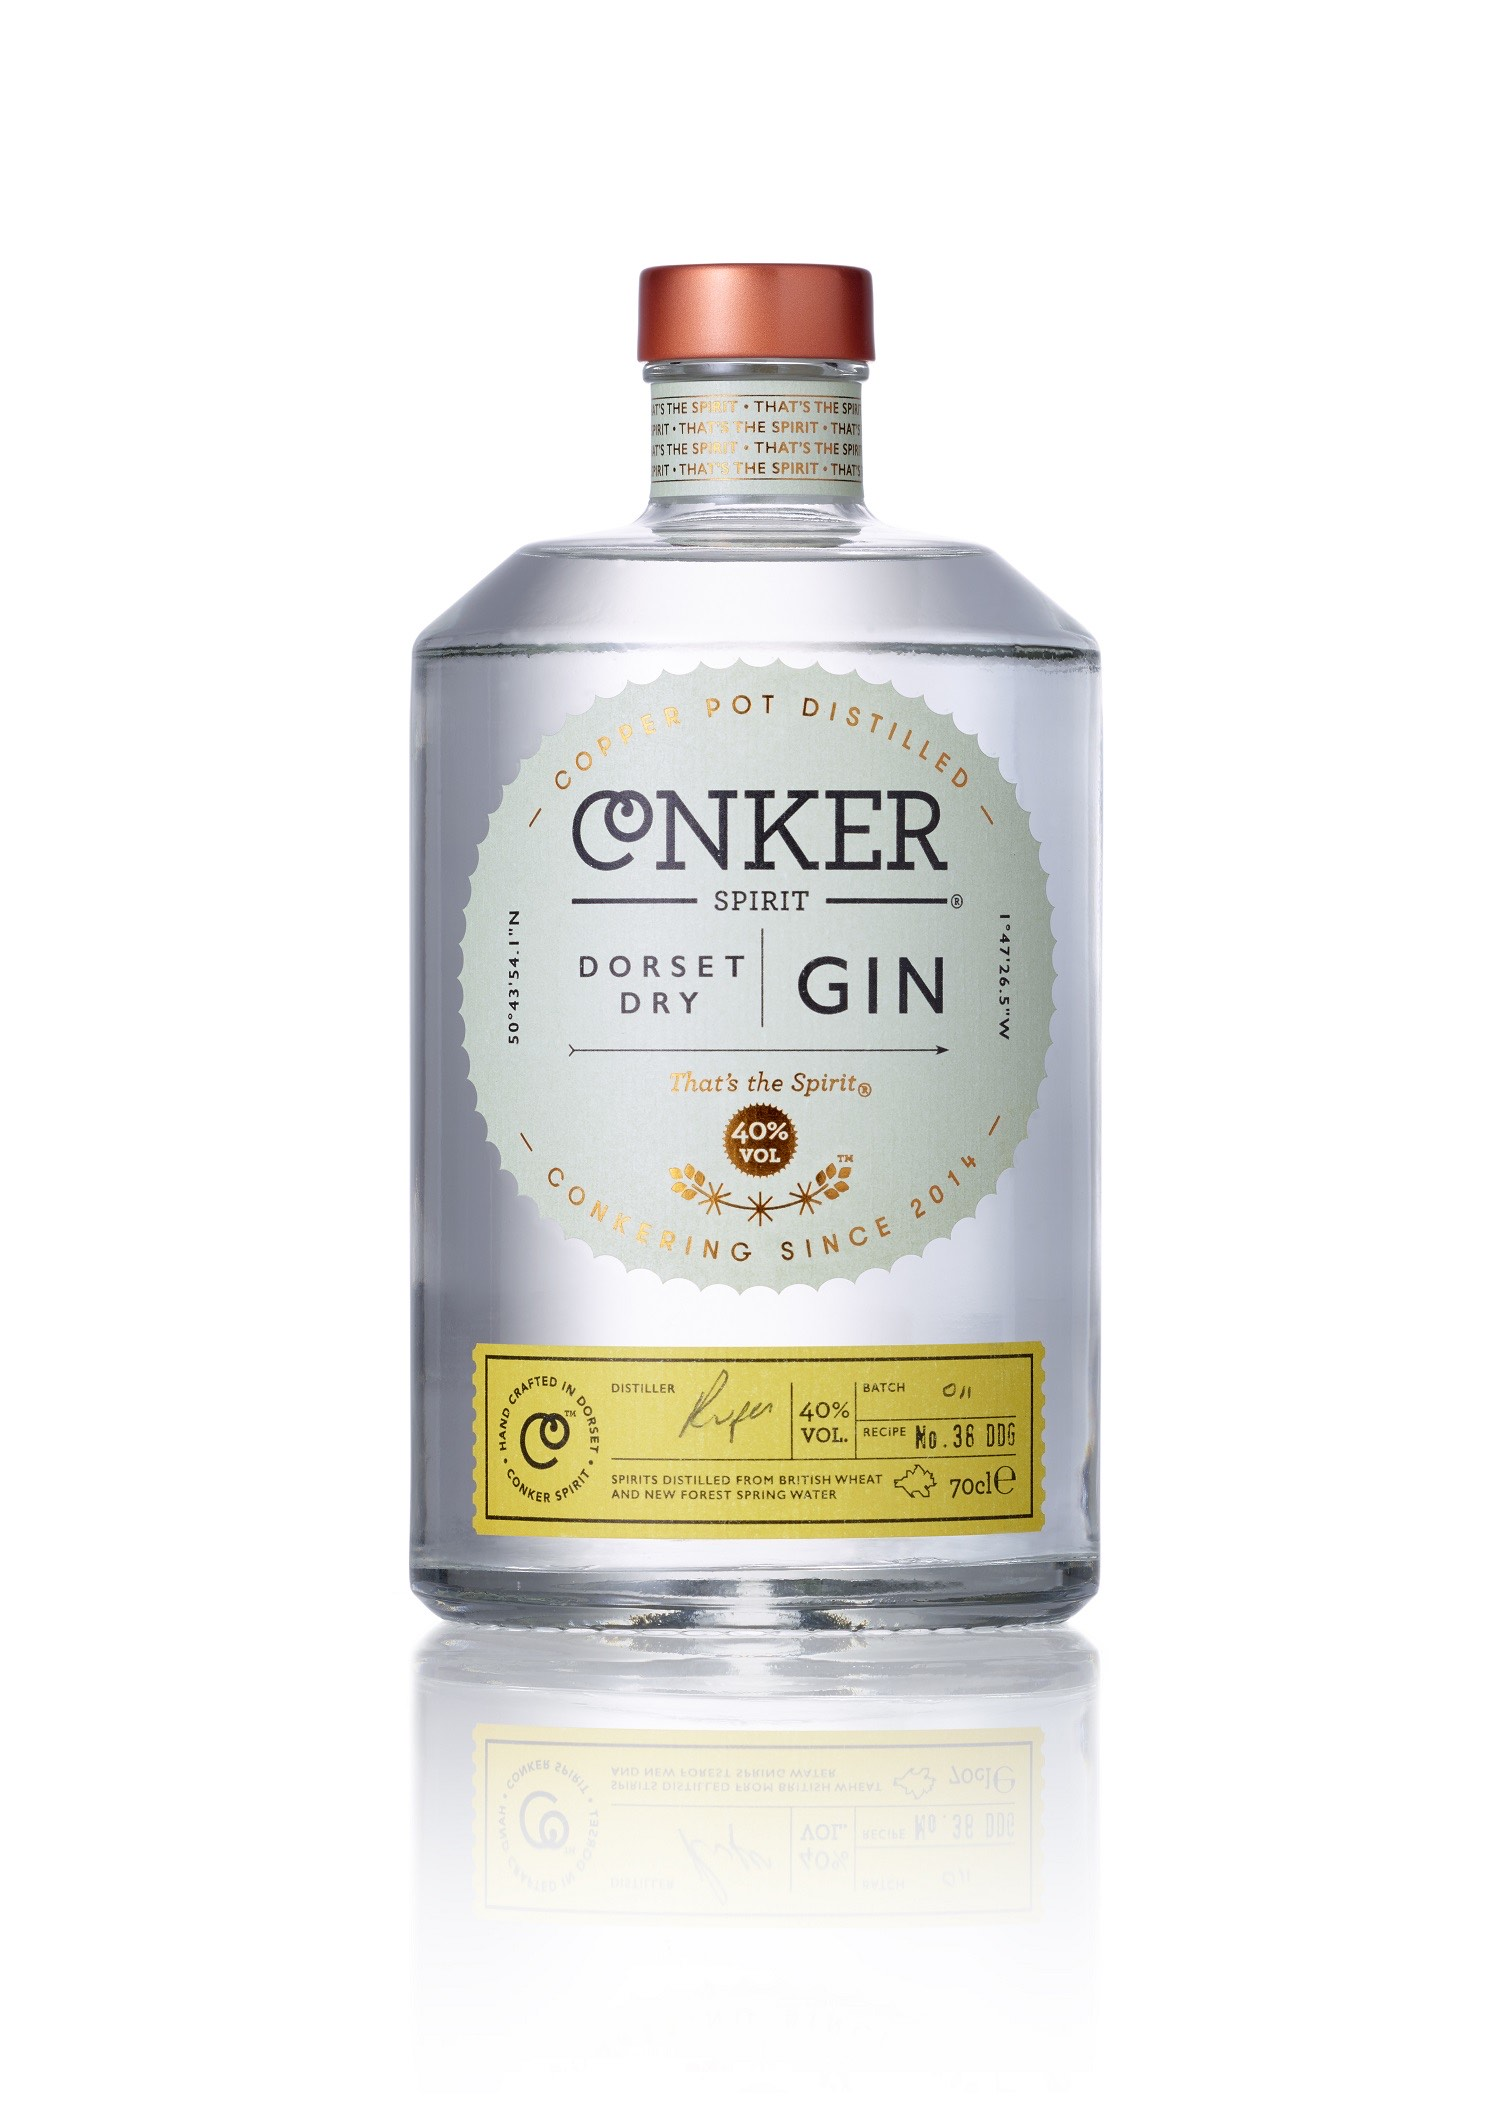 Small Batch Gins, Conker Spirit Gin, Artisan Gin